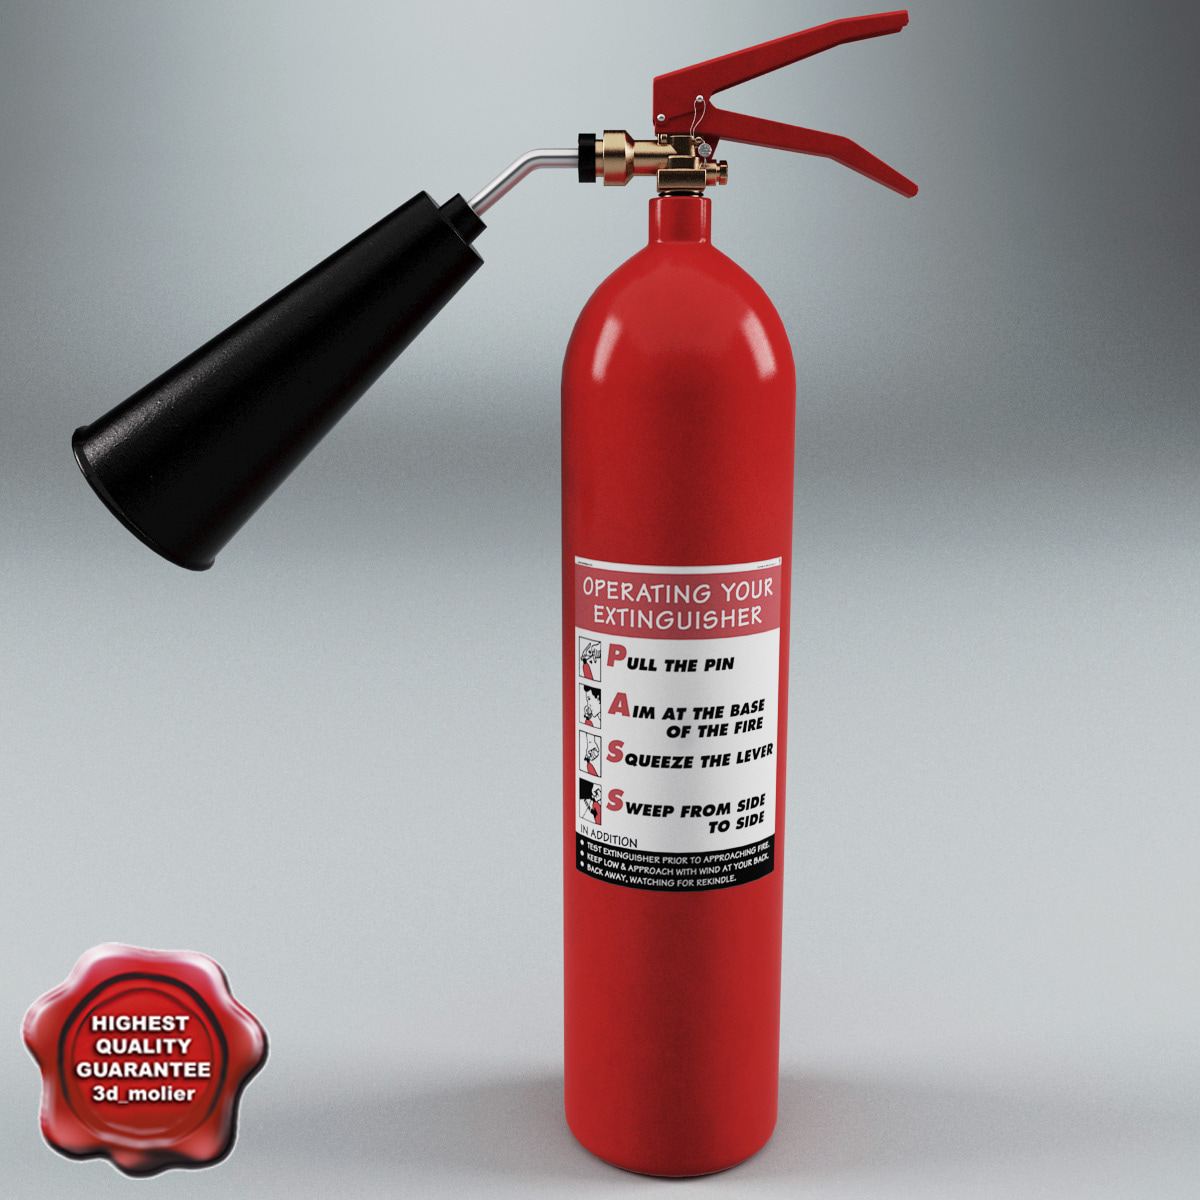 Fire_Extinguisher_V2_00.jpg